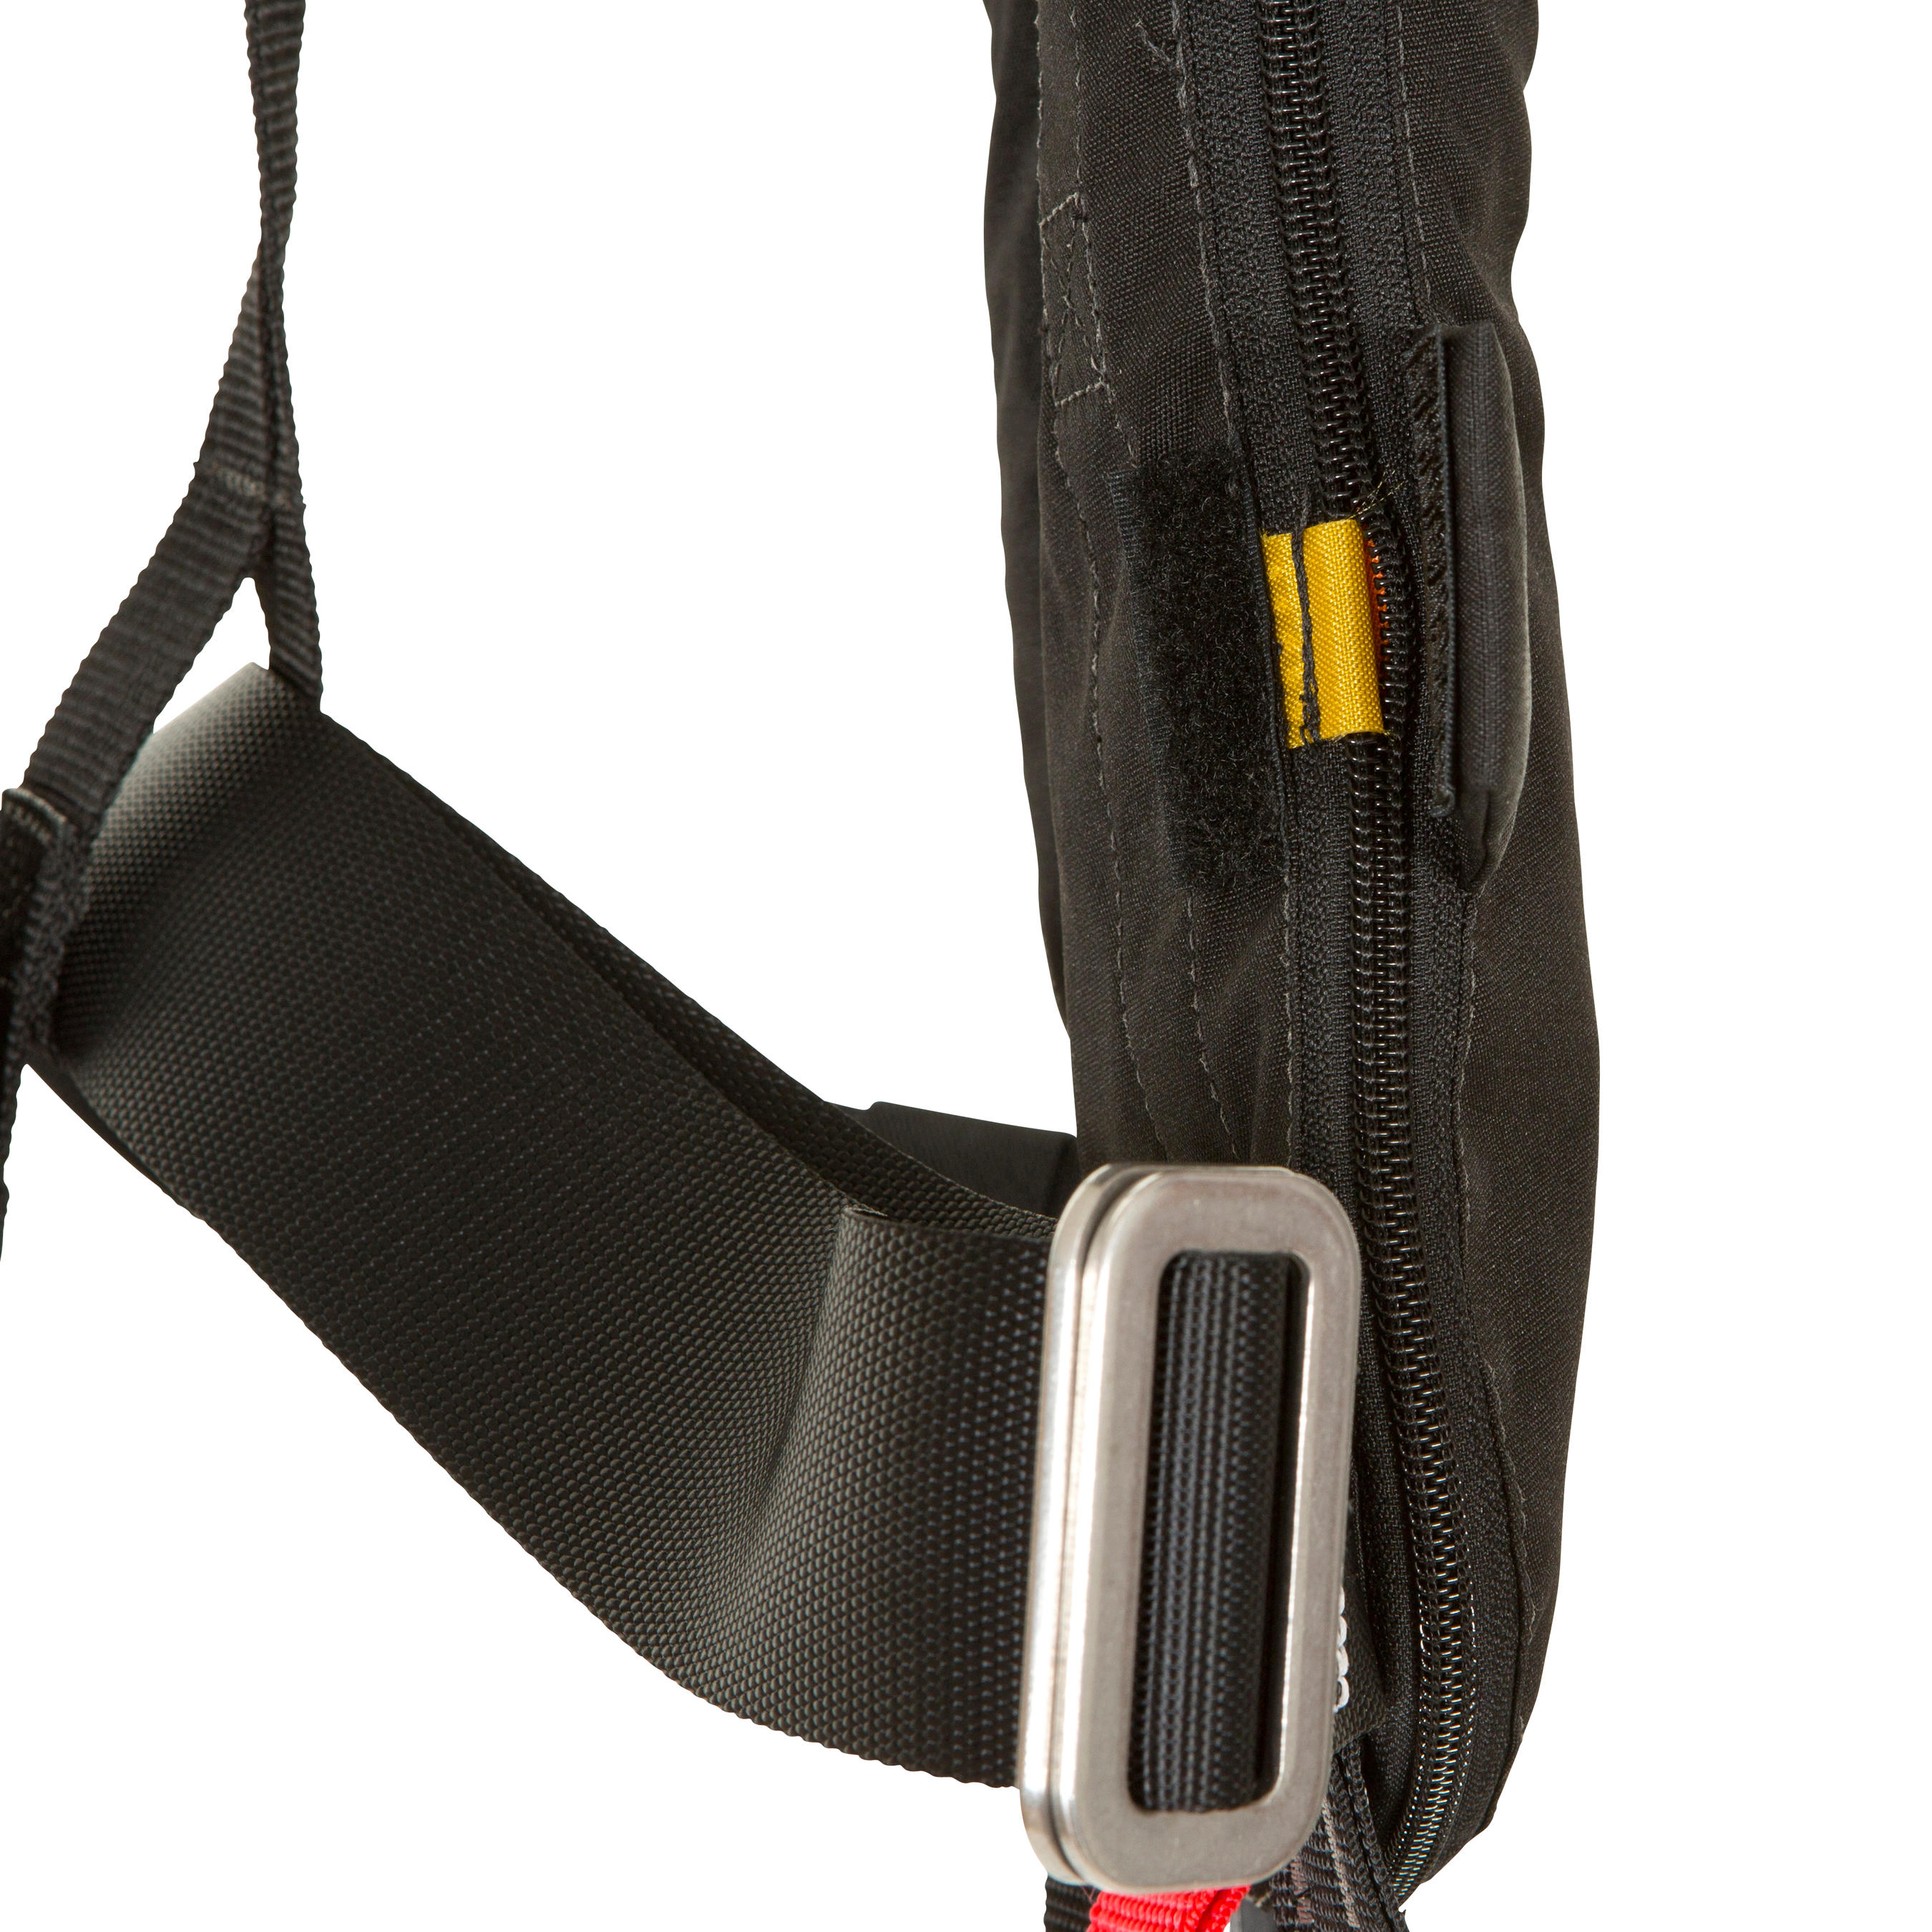 LJ150N AIR Adult Inflatable Sailing Life Jacket With Harness